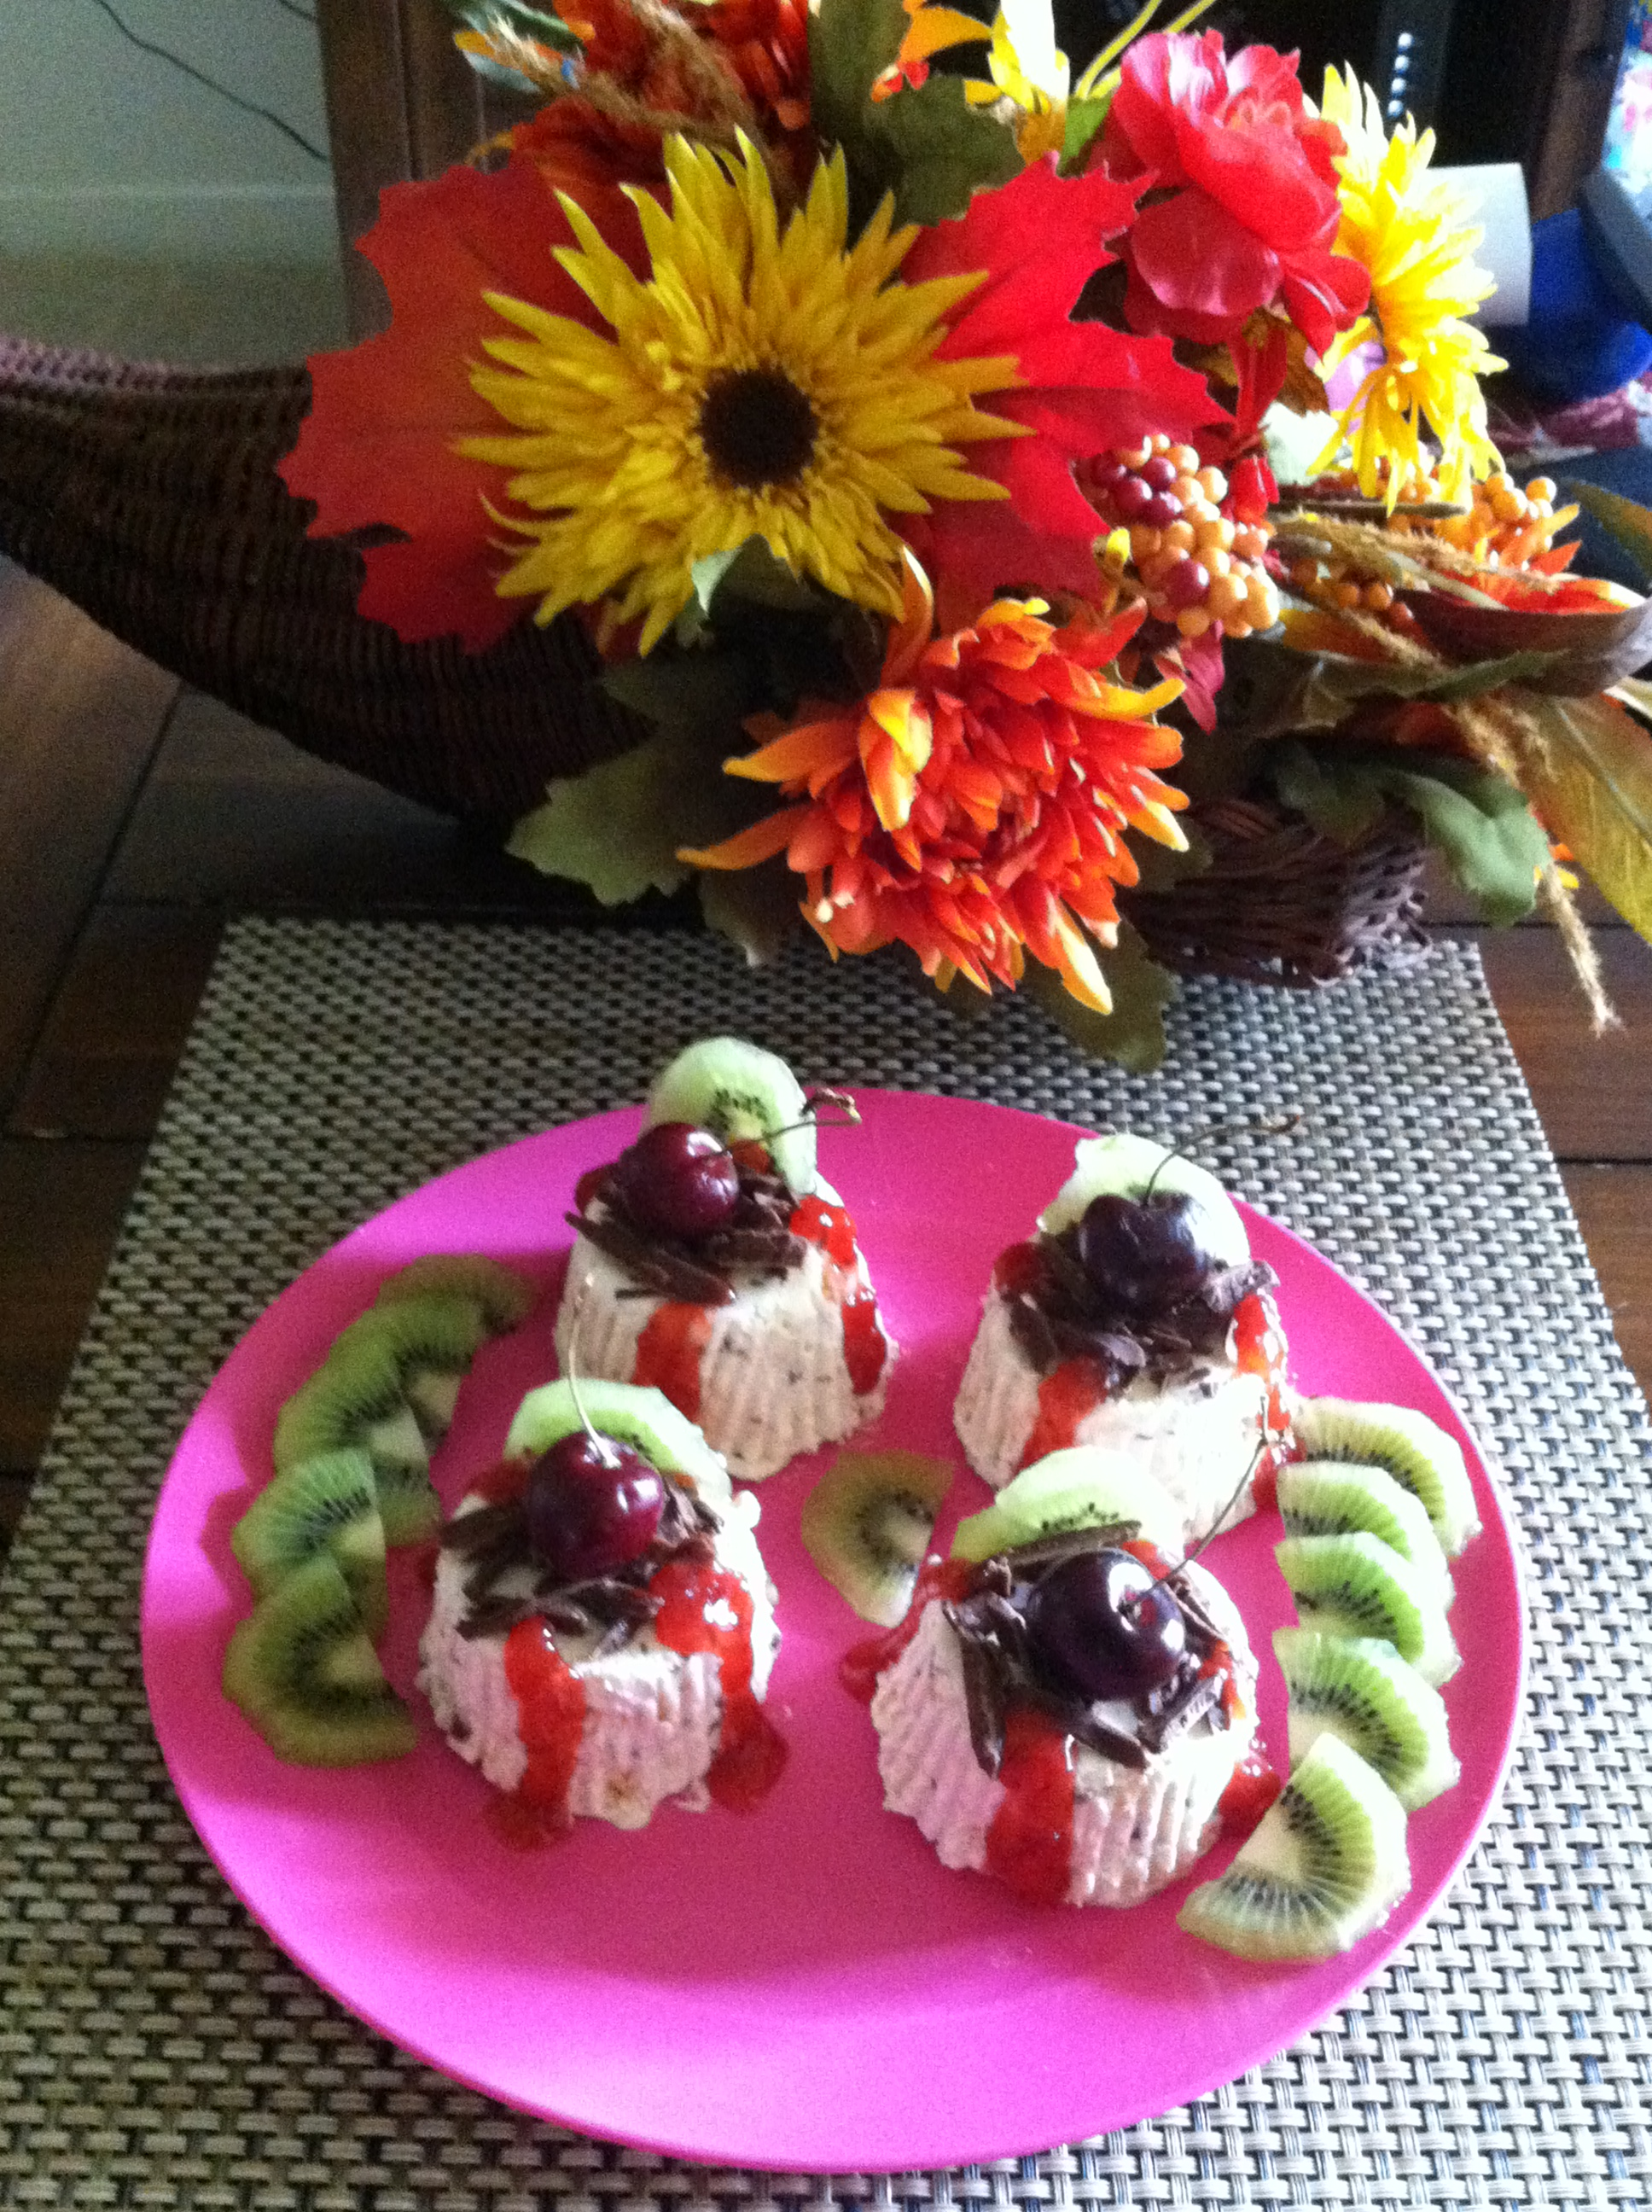 Picture of Meringue and Coffee Liqueur Semifreddo Topped With Chocolate Shaving,strawberry Preserve,kiwi and Cherry